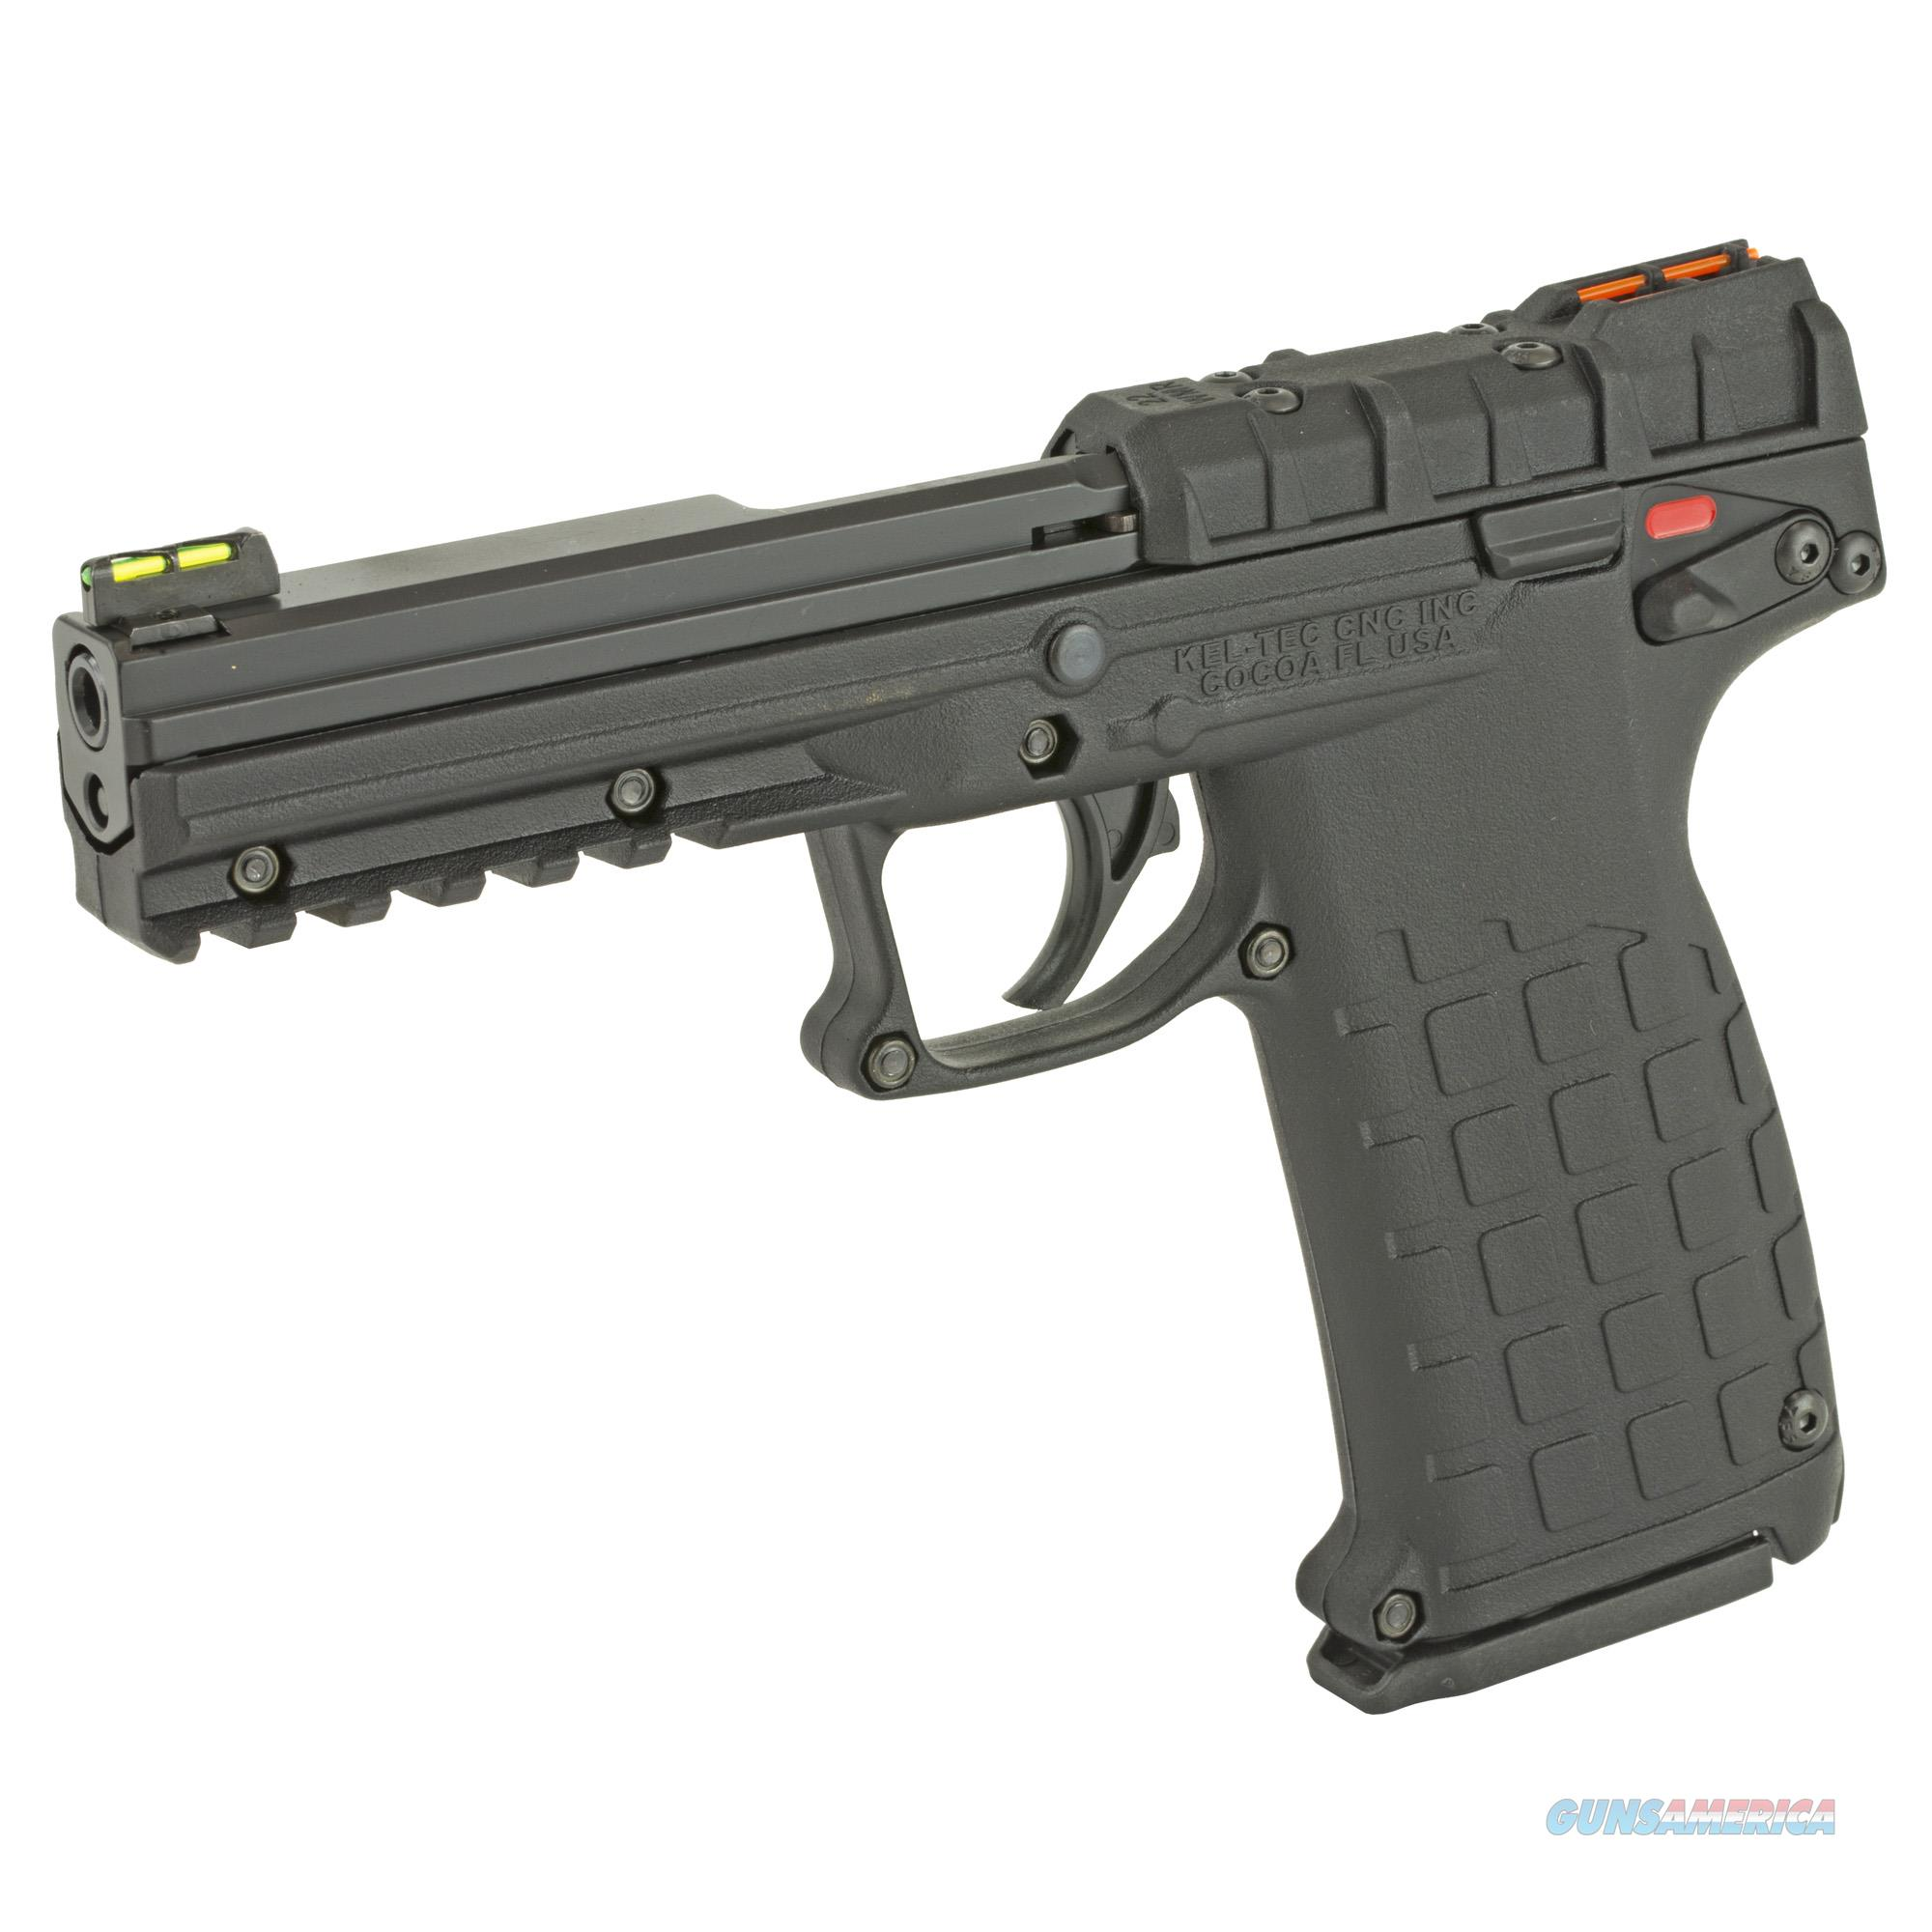 KEL-TEC PMR-30 - .22WMR - 30 ROUNDS - 3 MAGAZINES  - It turns light weight into heavy duty   Guns > Pistols > Kel-Tec Pistols > Other